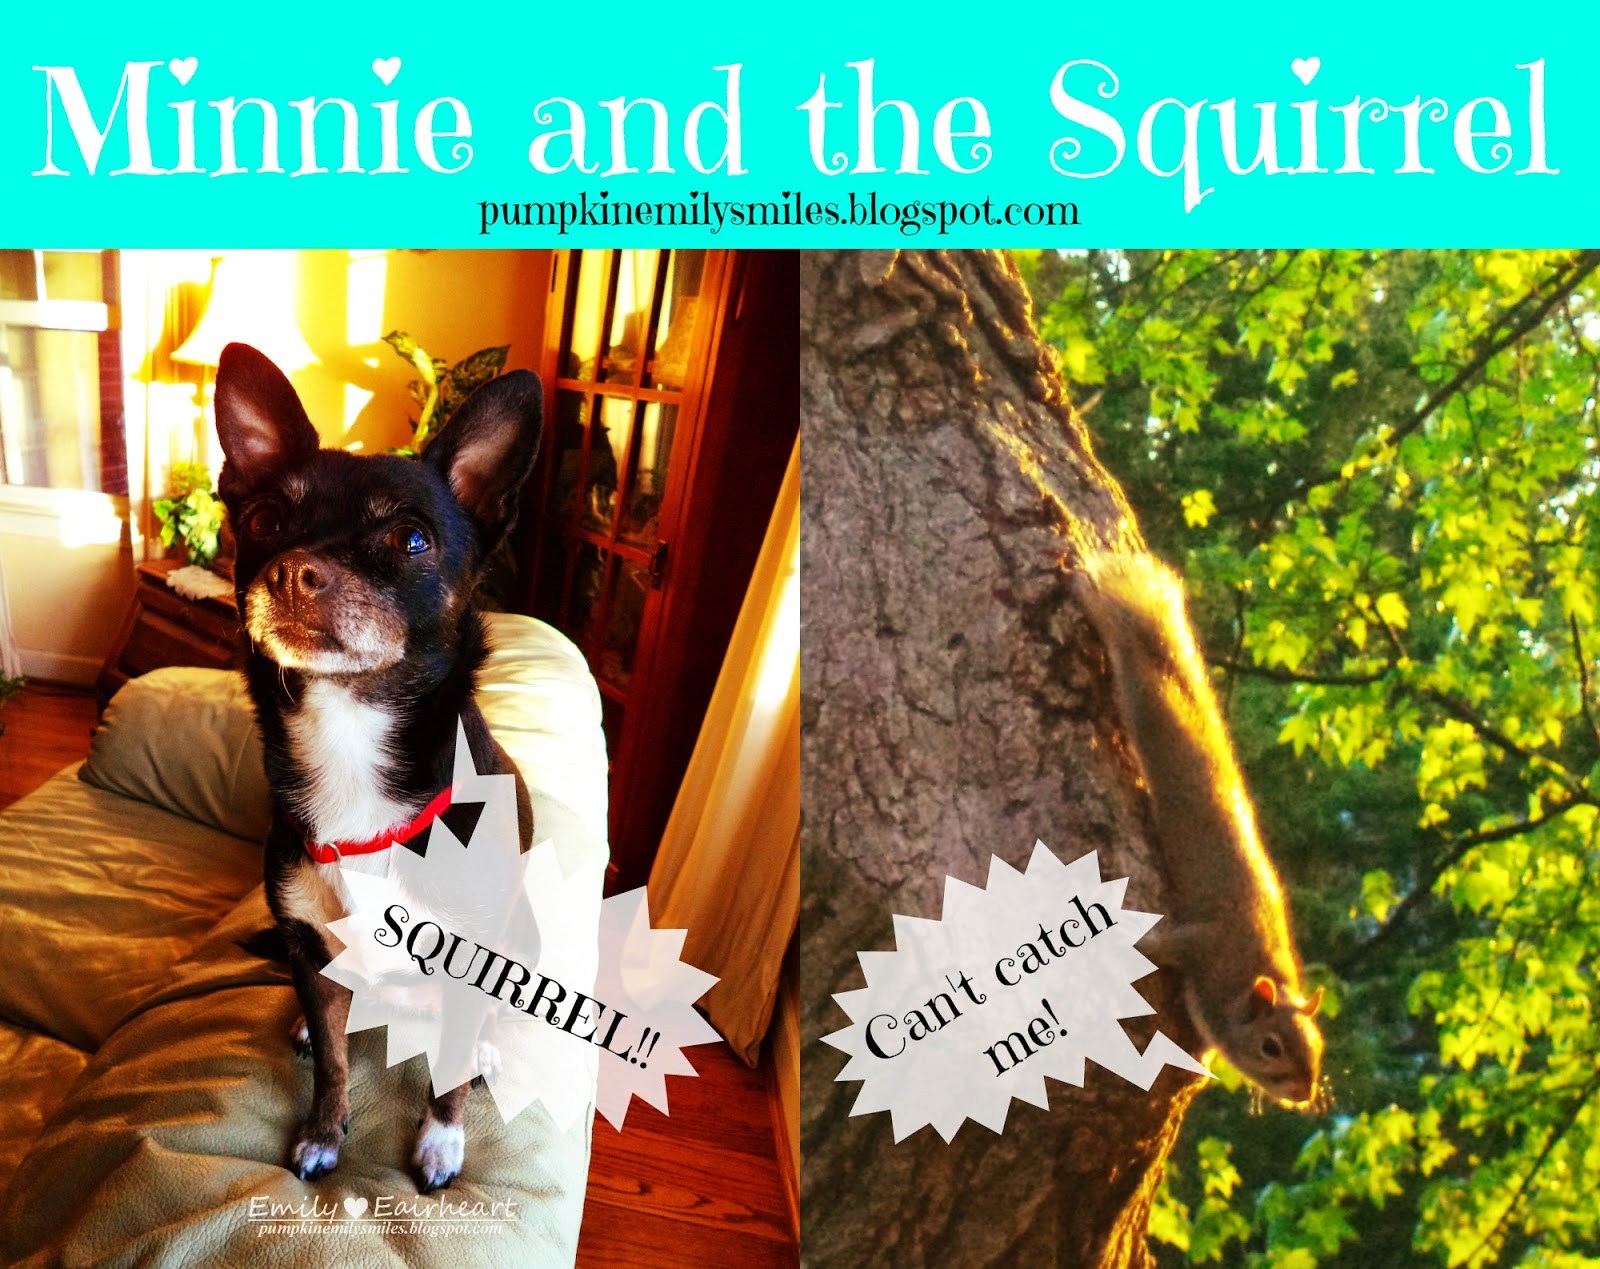 Minnie and the Squirrel